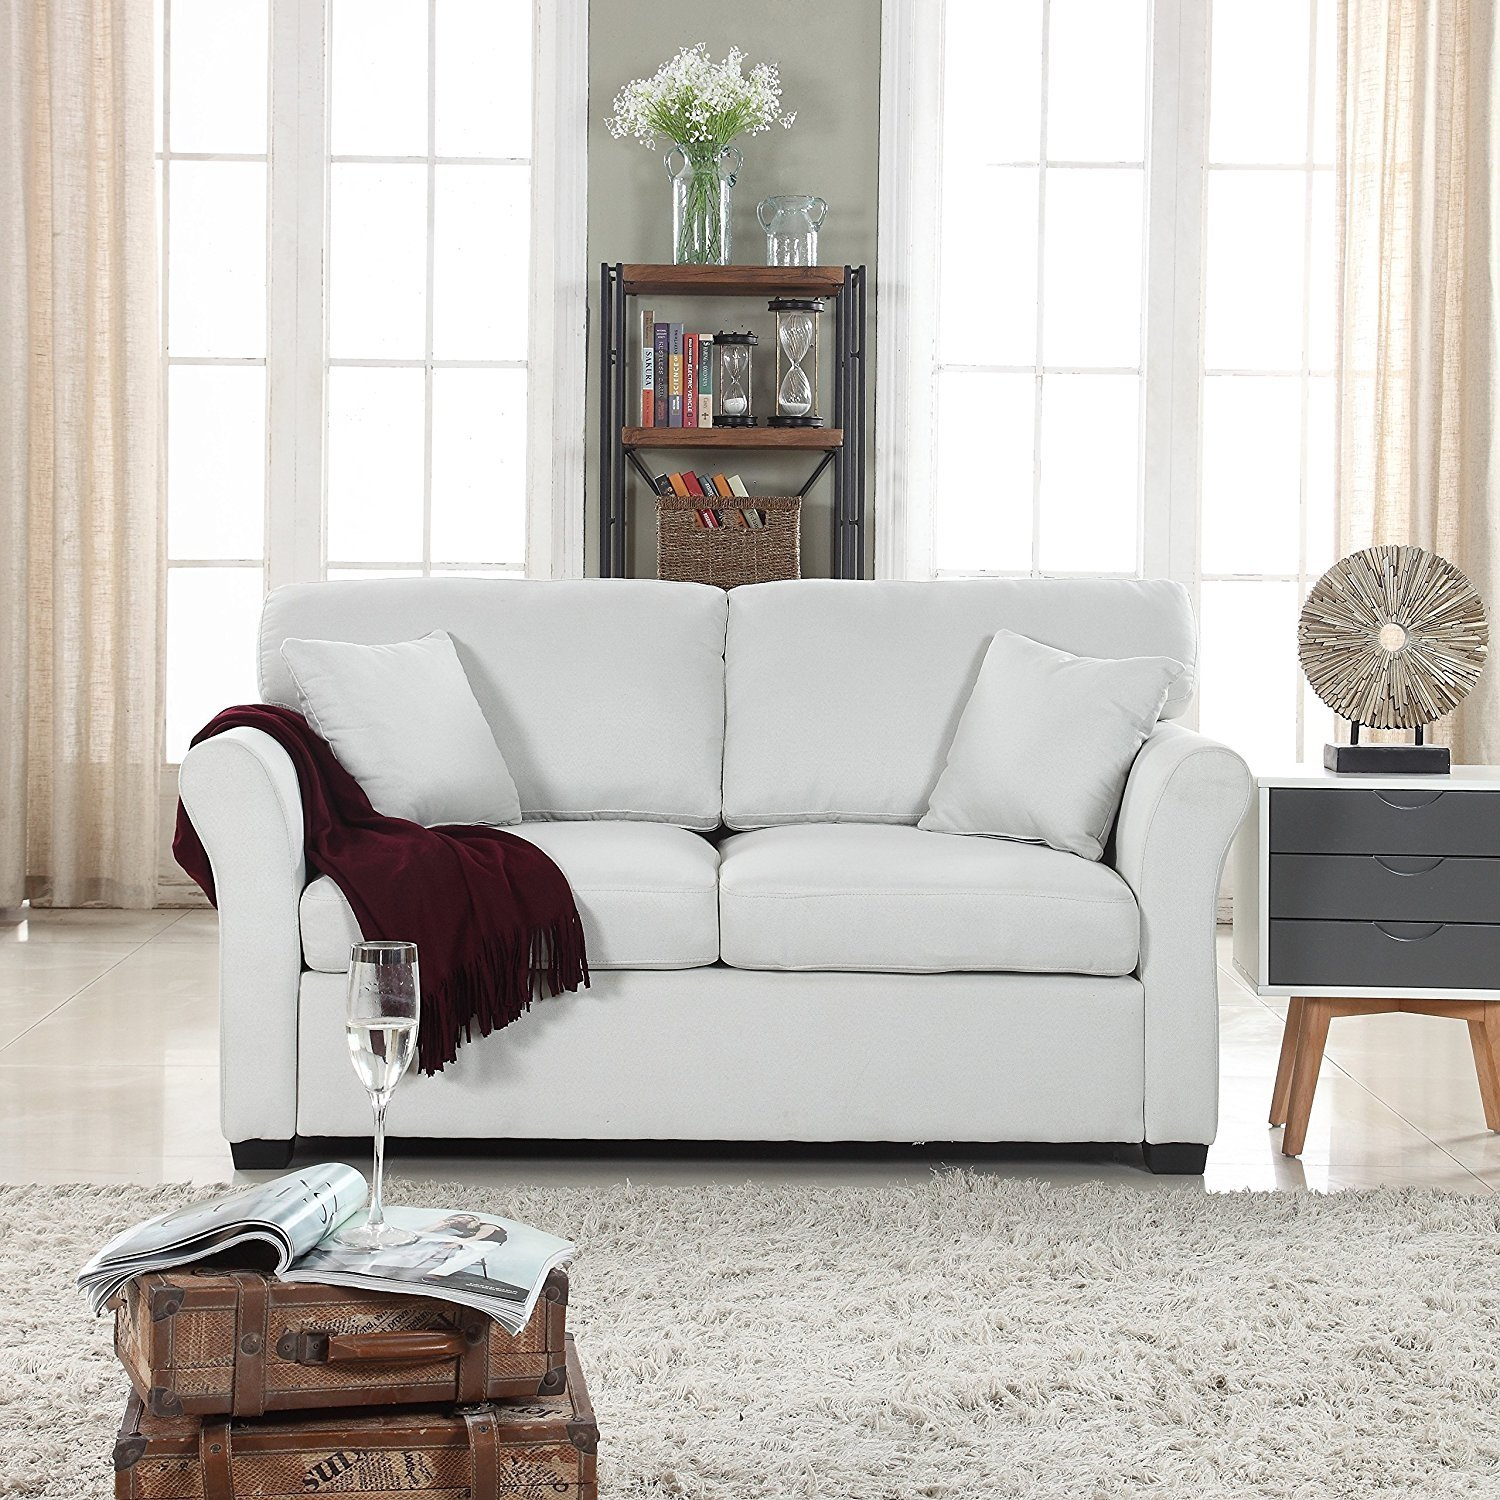 Details about small space beige loveseat sofa comfortable fabric living room love seat